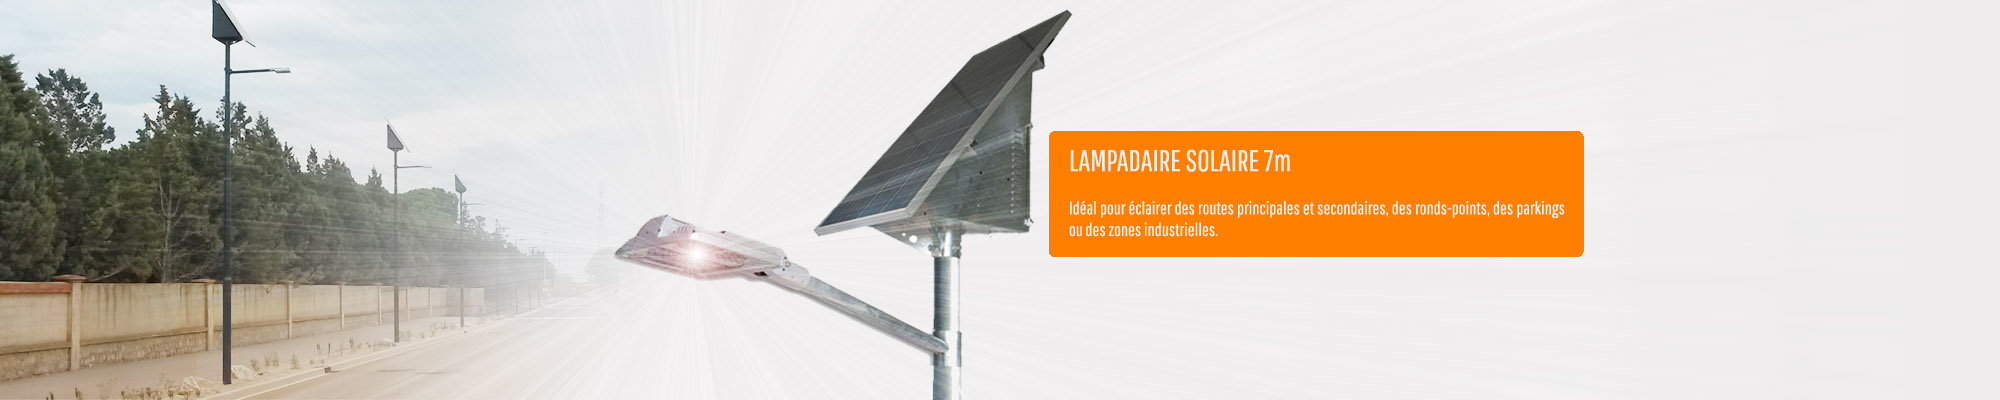 186338Energiedouce-lampadaires-solaires-performants-1